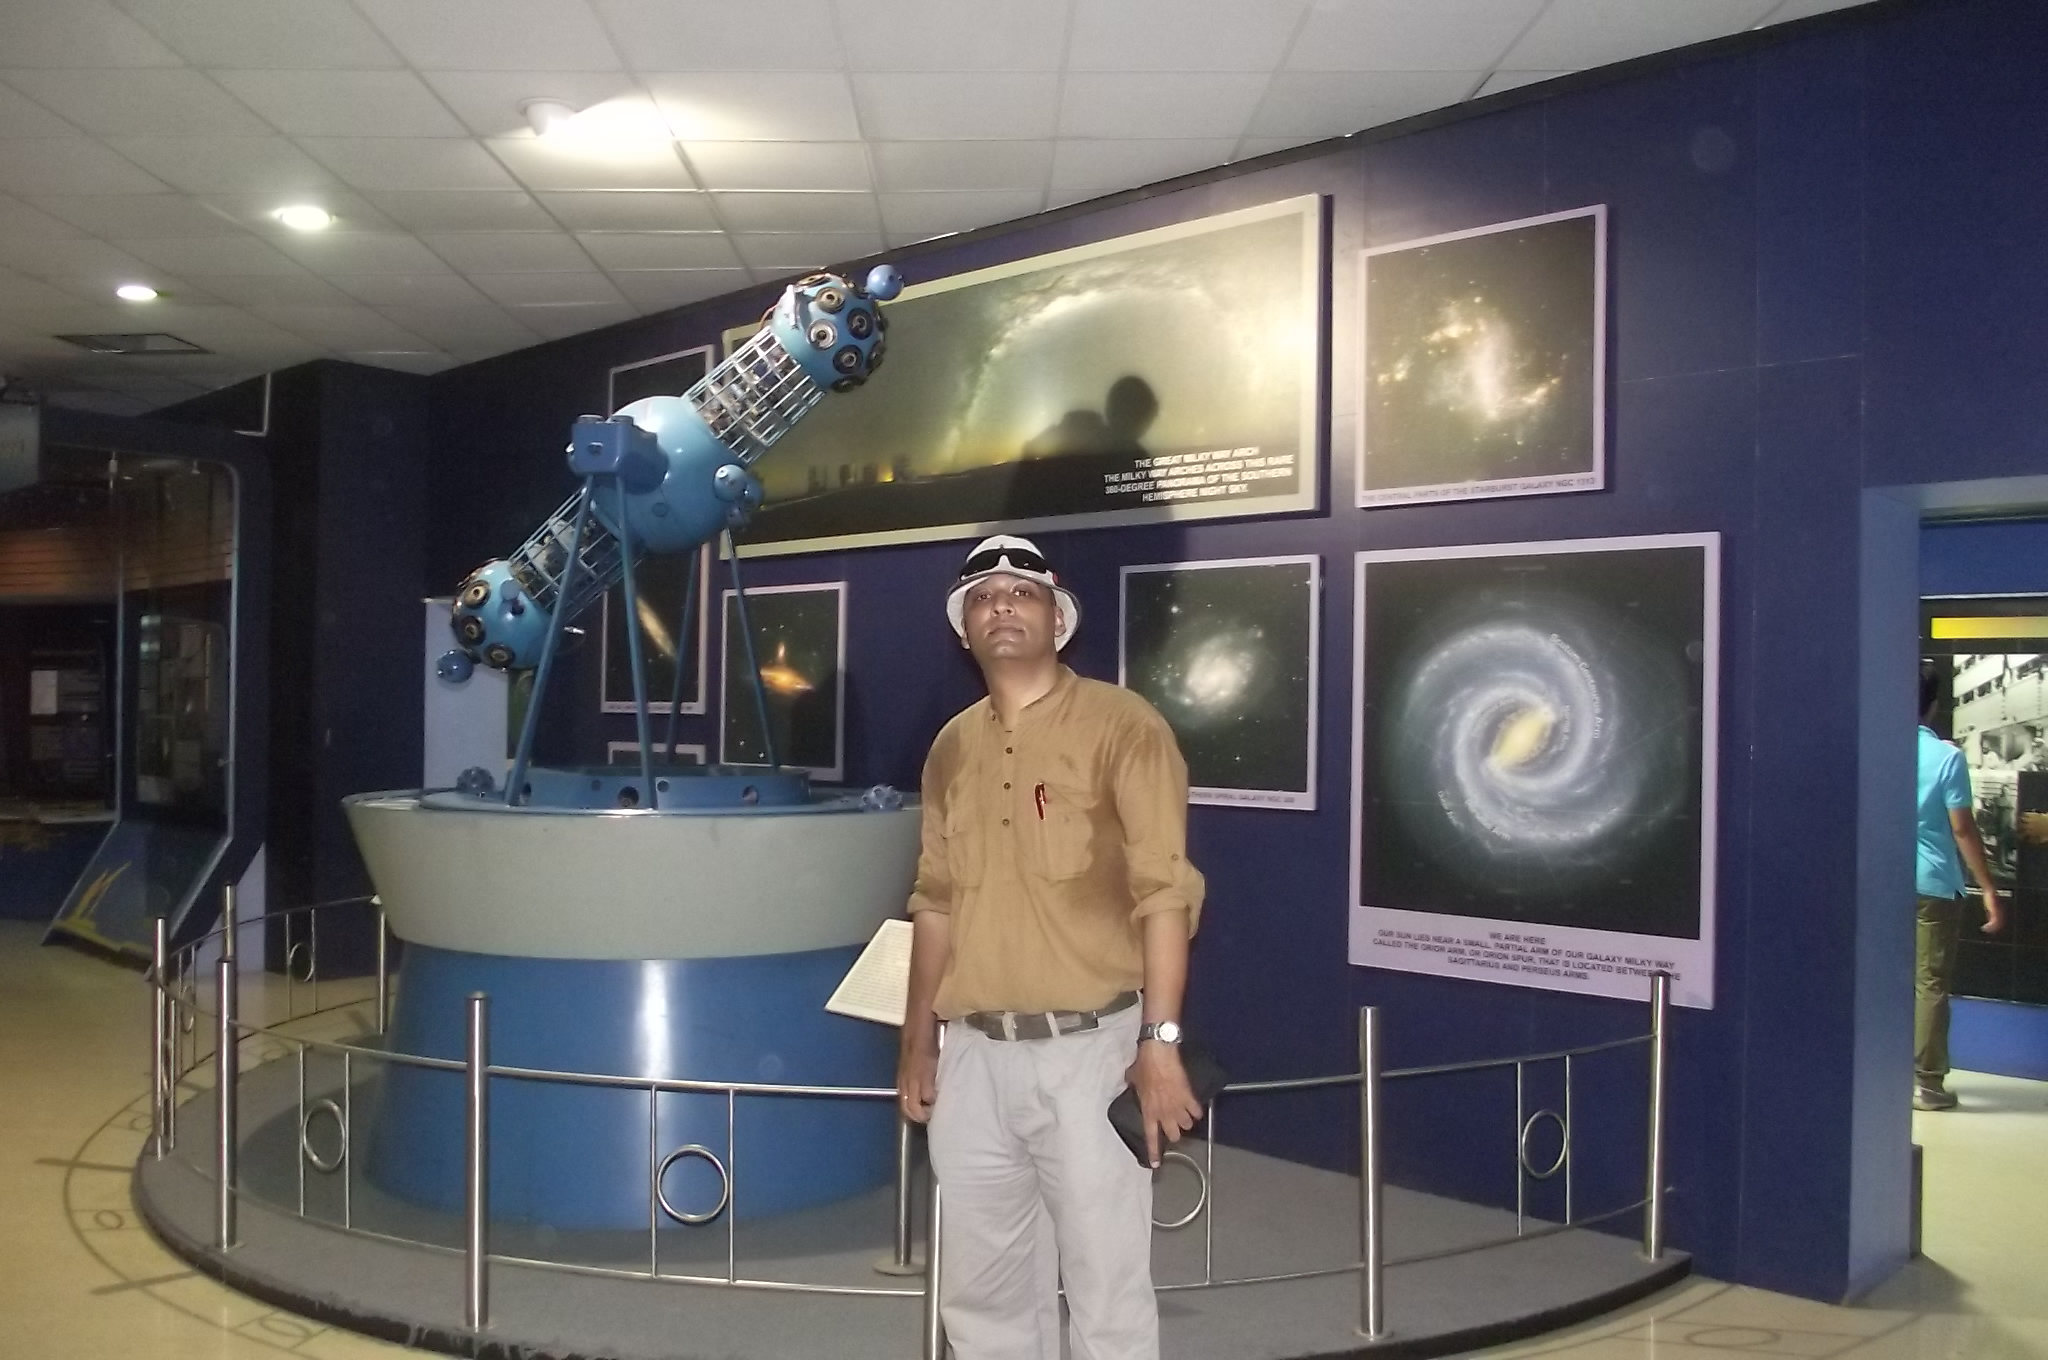 Nehru Planetarium Delhi, To Infinity and Beyond: Stargazing at the Nehru Planetarium